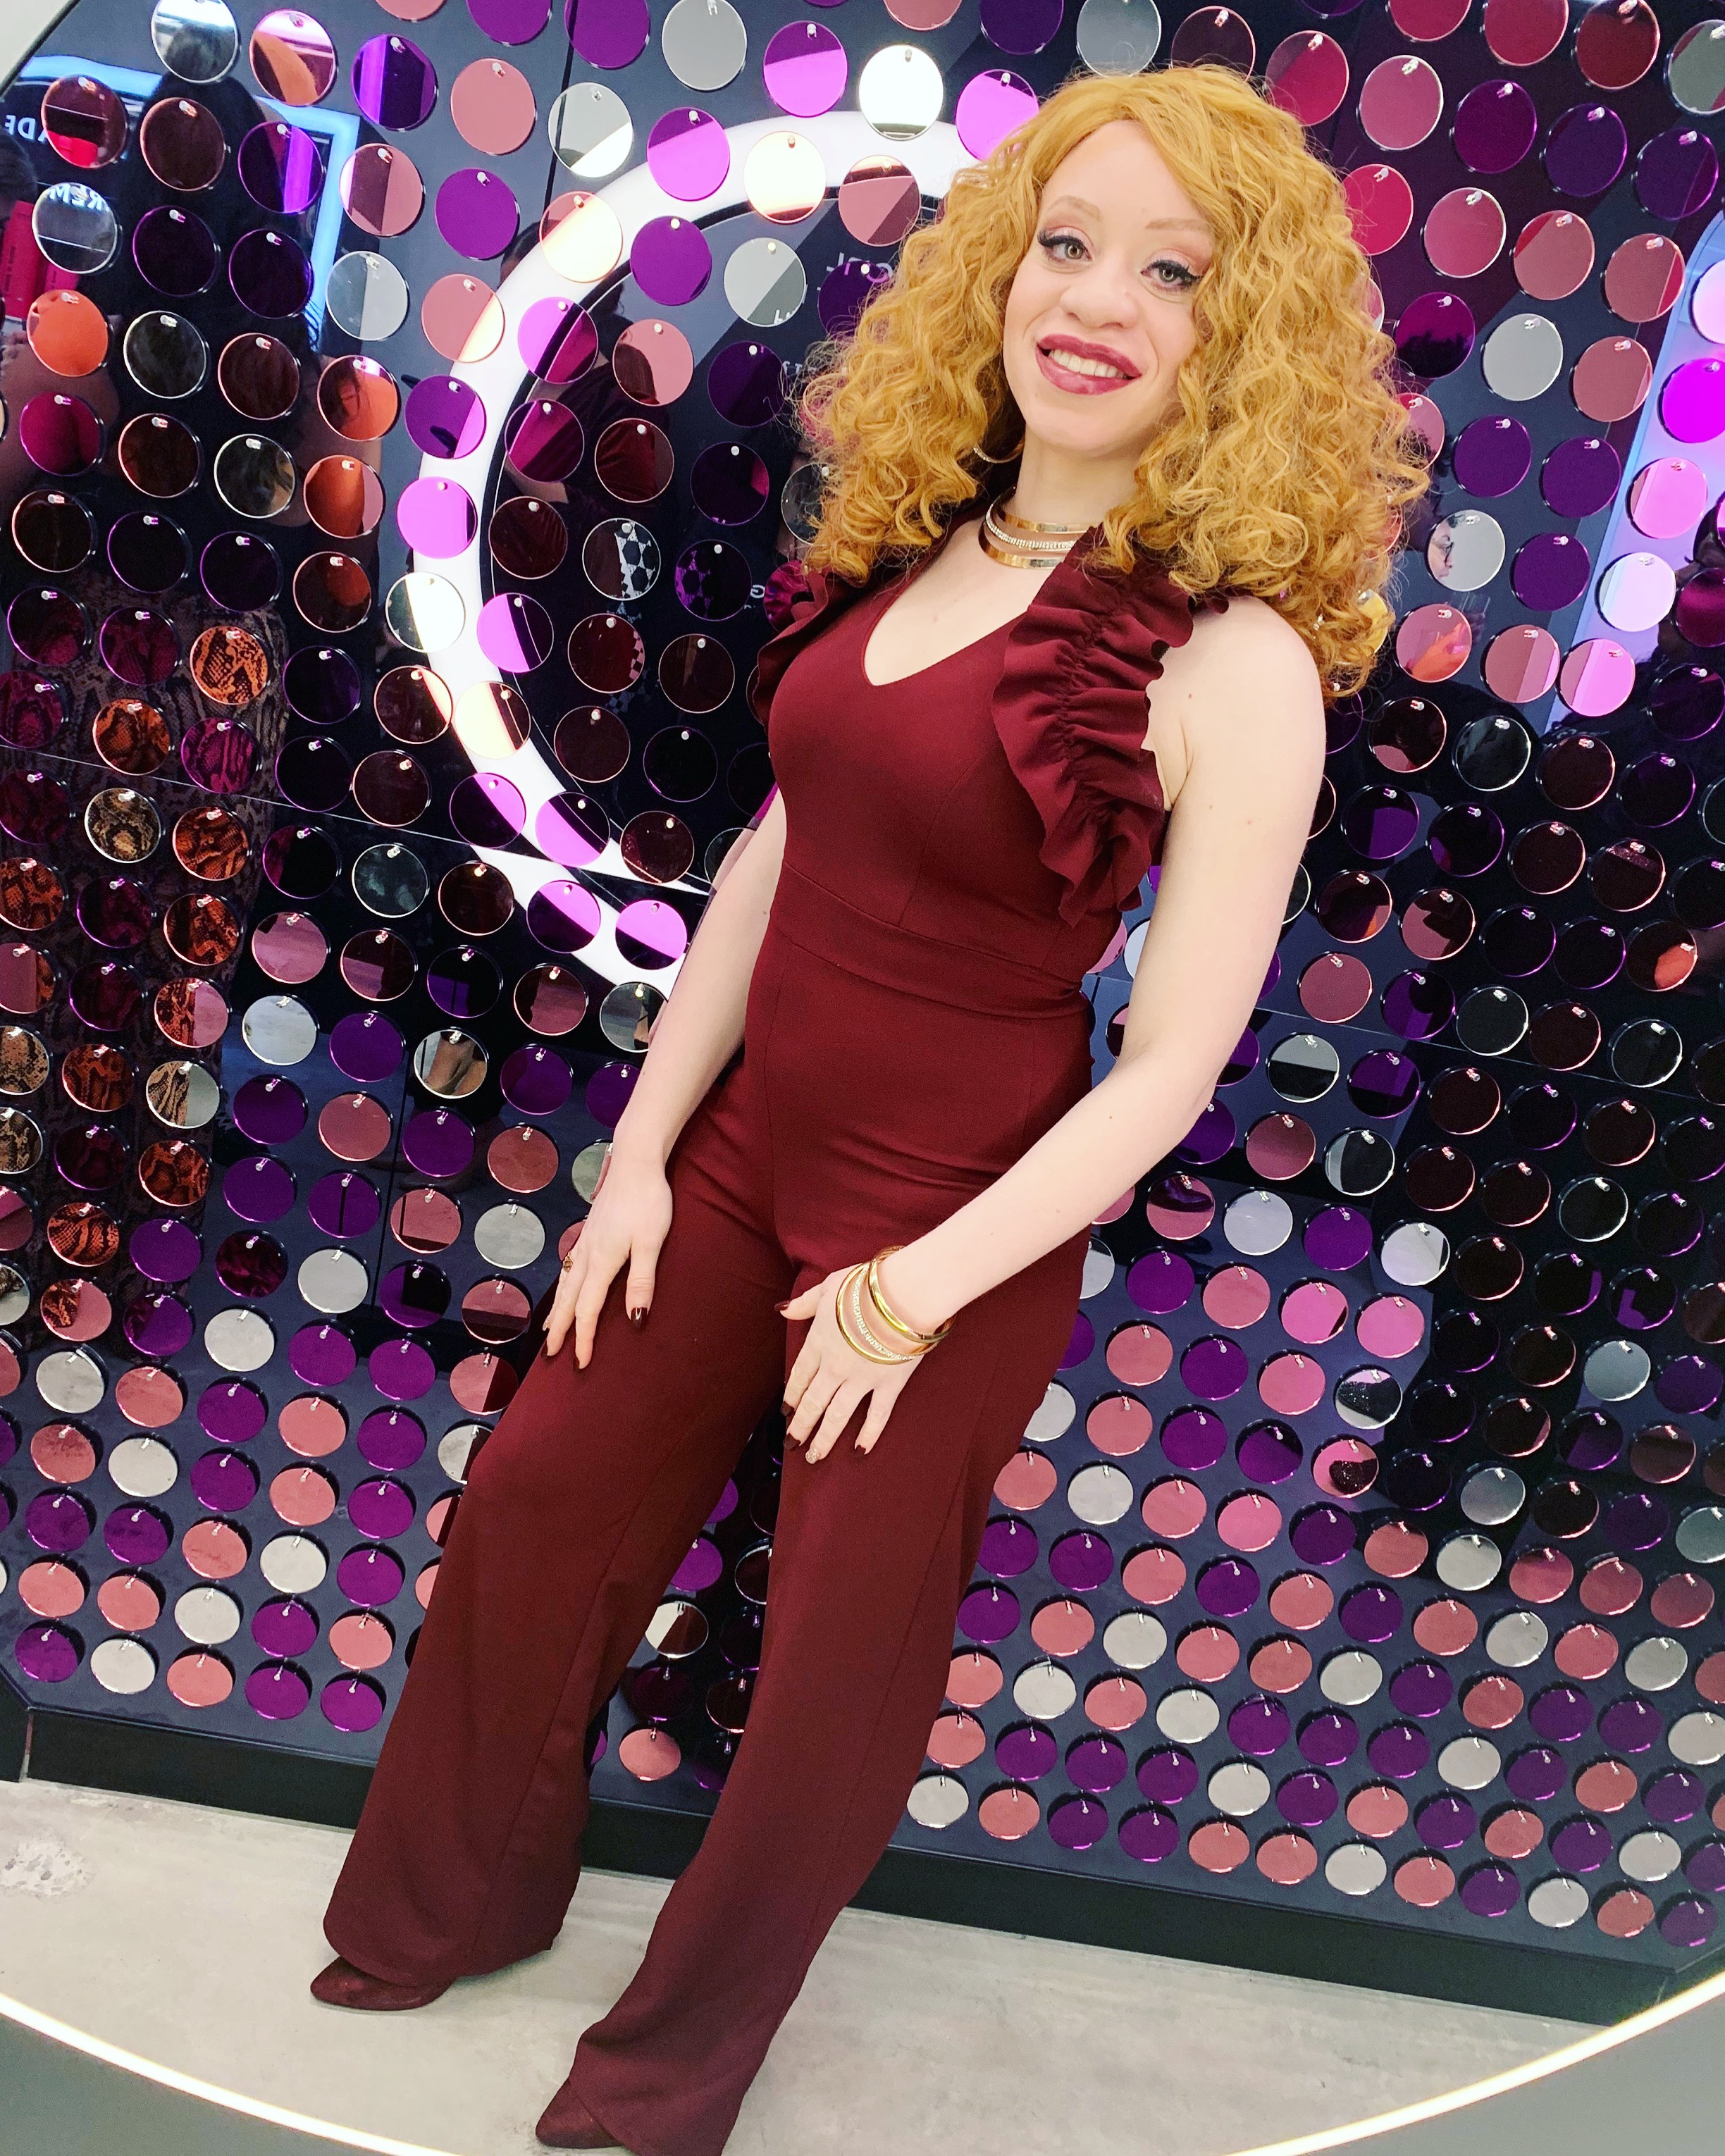 J Renée is wearing a burgundy romper and matching boots with gold and rhinestone jewelry.